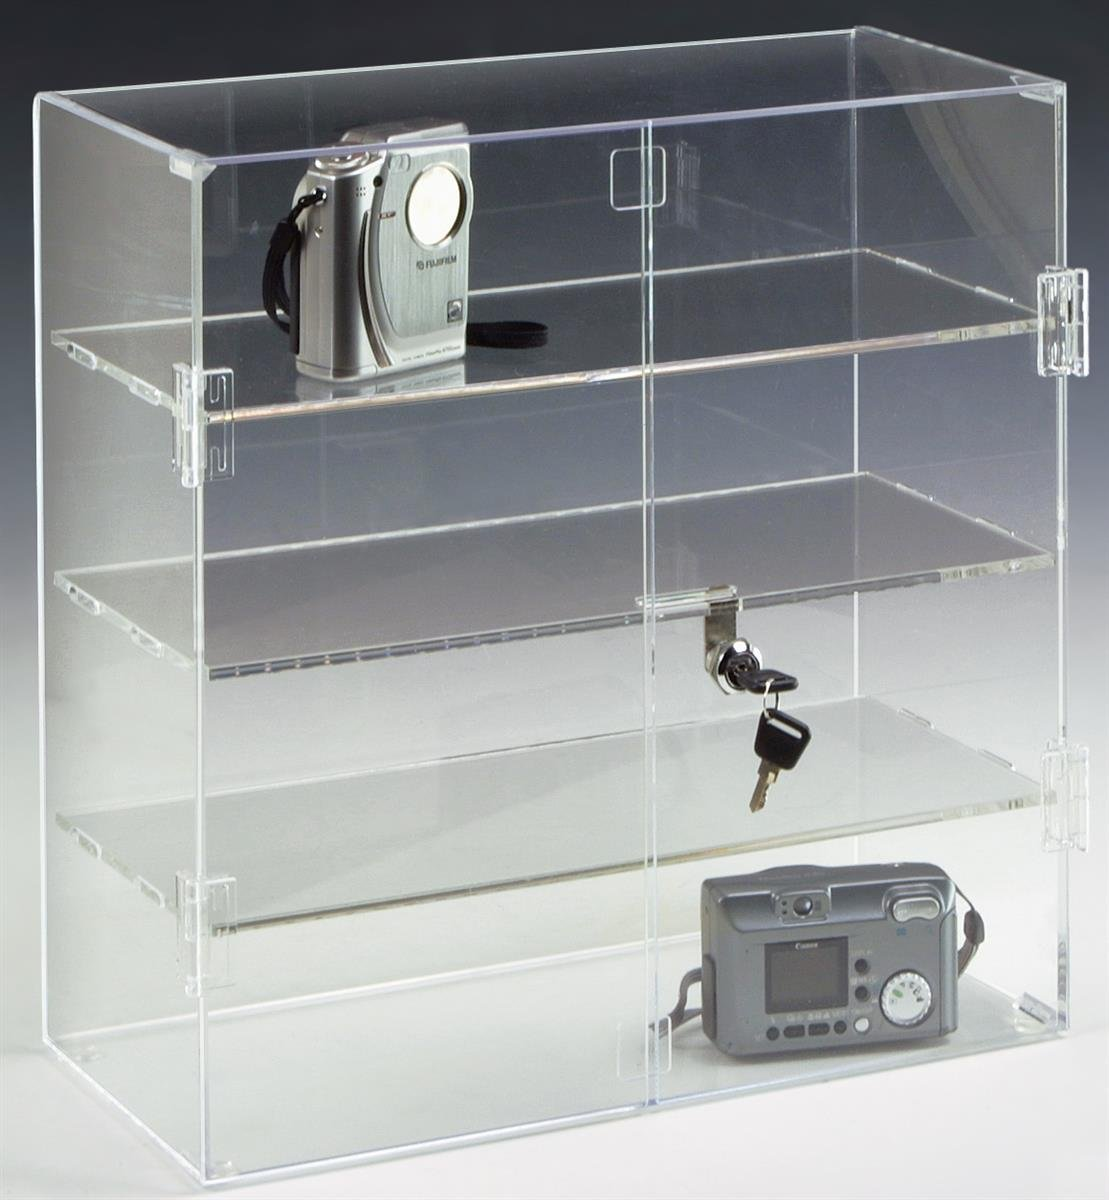 Retail Countertop Display Case, 16-1/2''h x 16-1/4''w x 7'' d, Clear Acrylic with 3 Shelves and Locking Hinged Doors